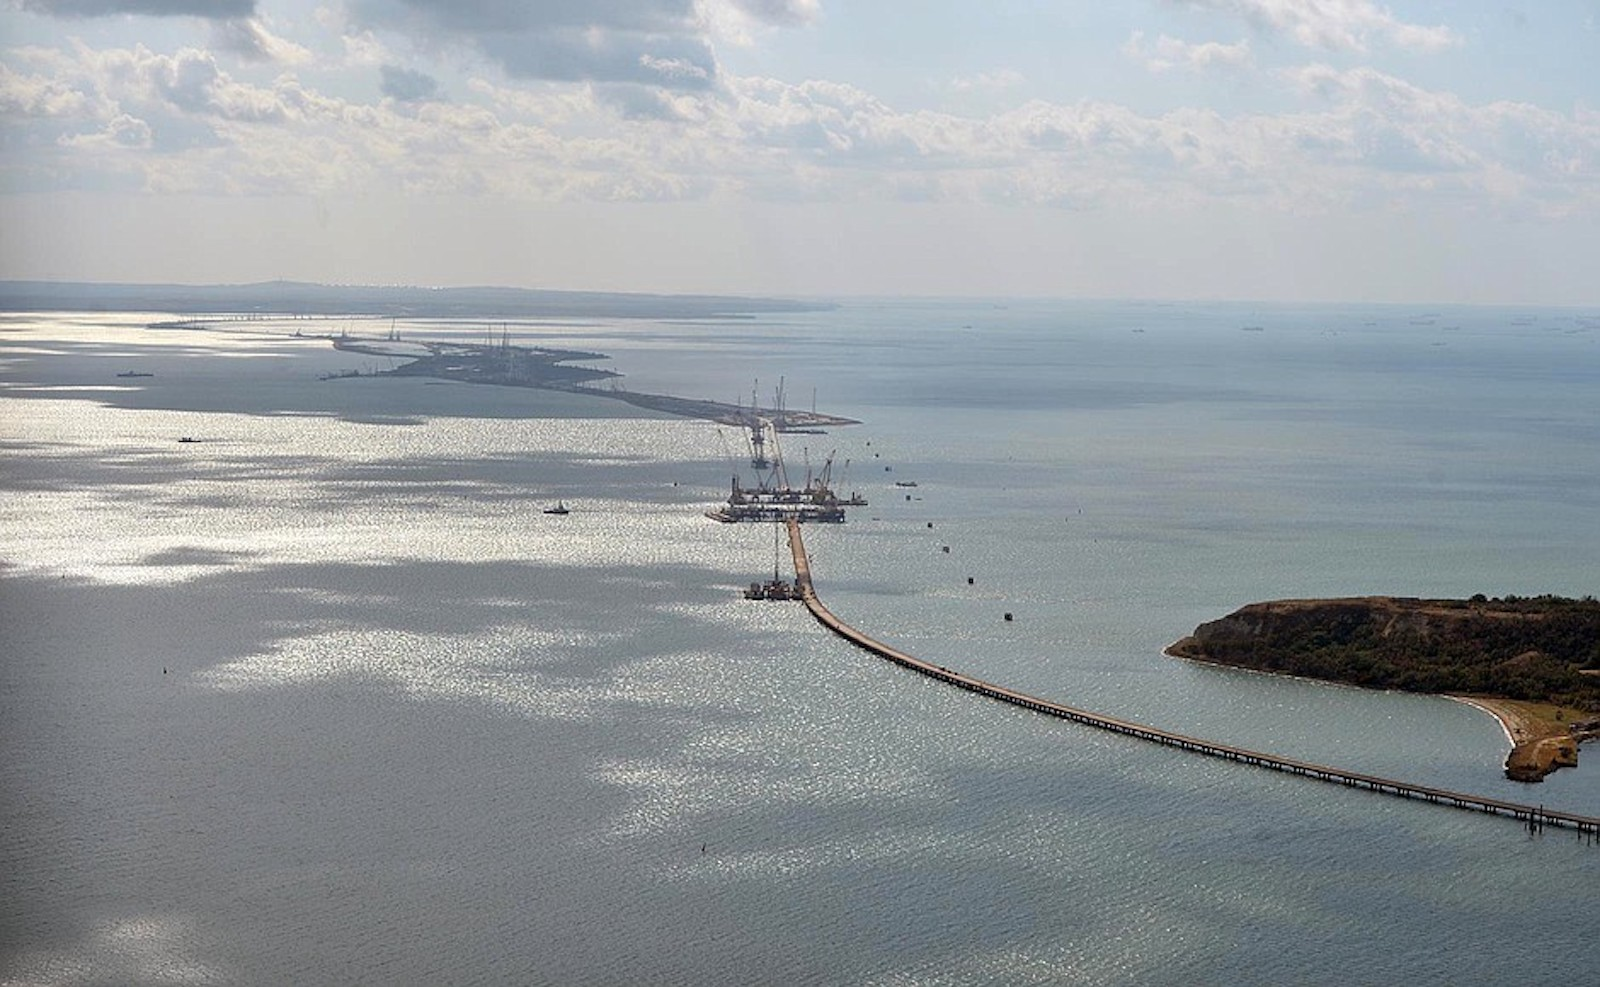 Kerch Strait (Photo: Kremlin.ru)